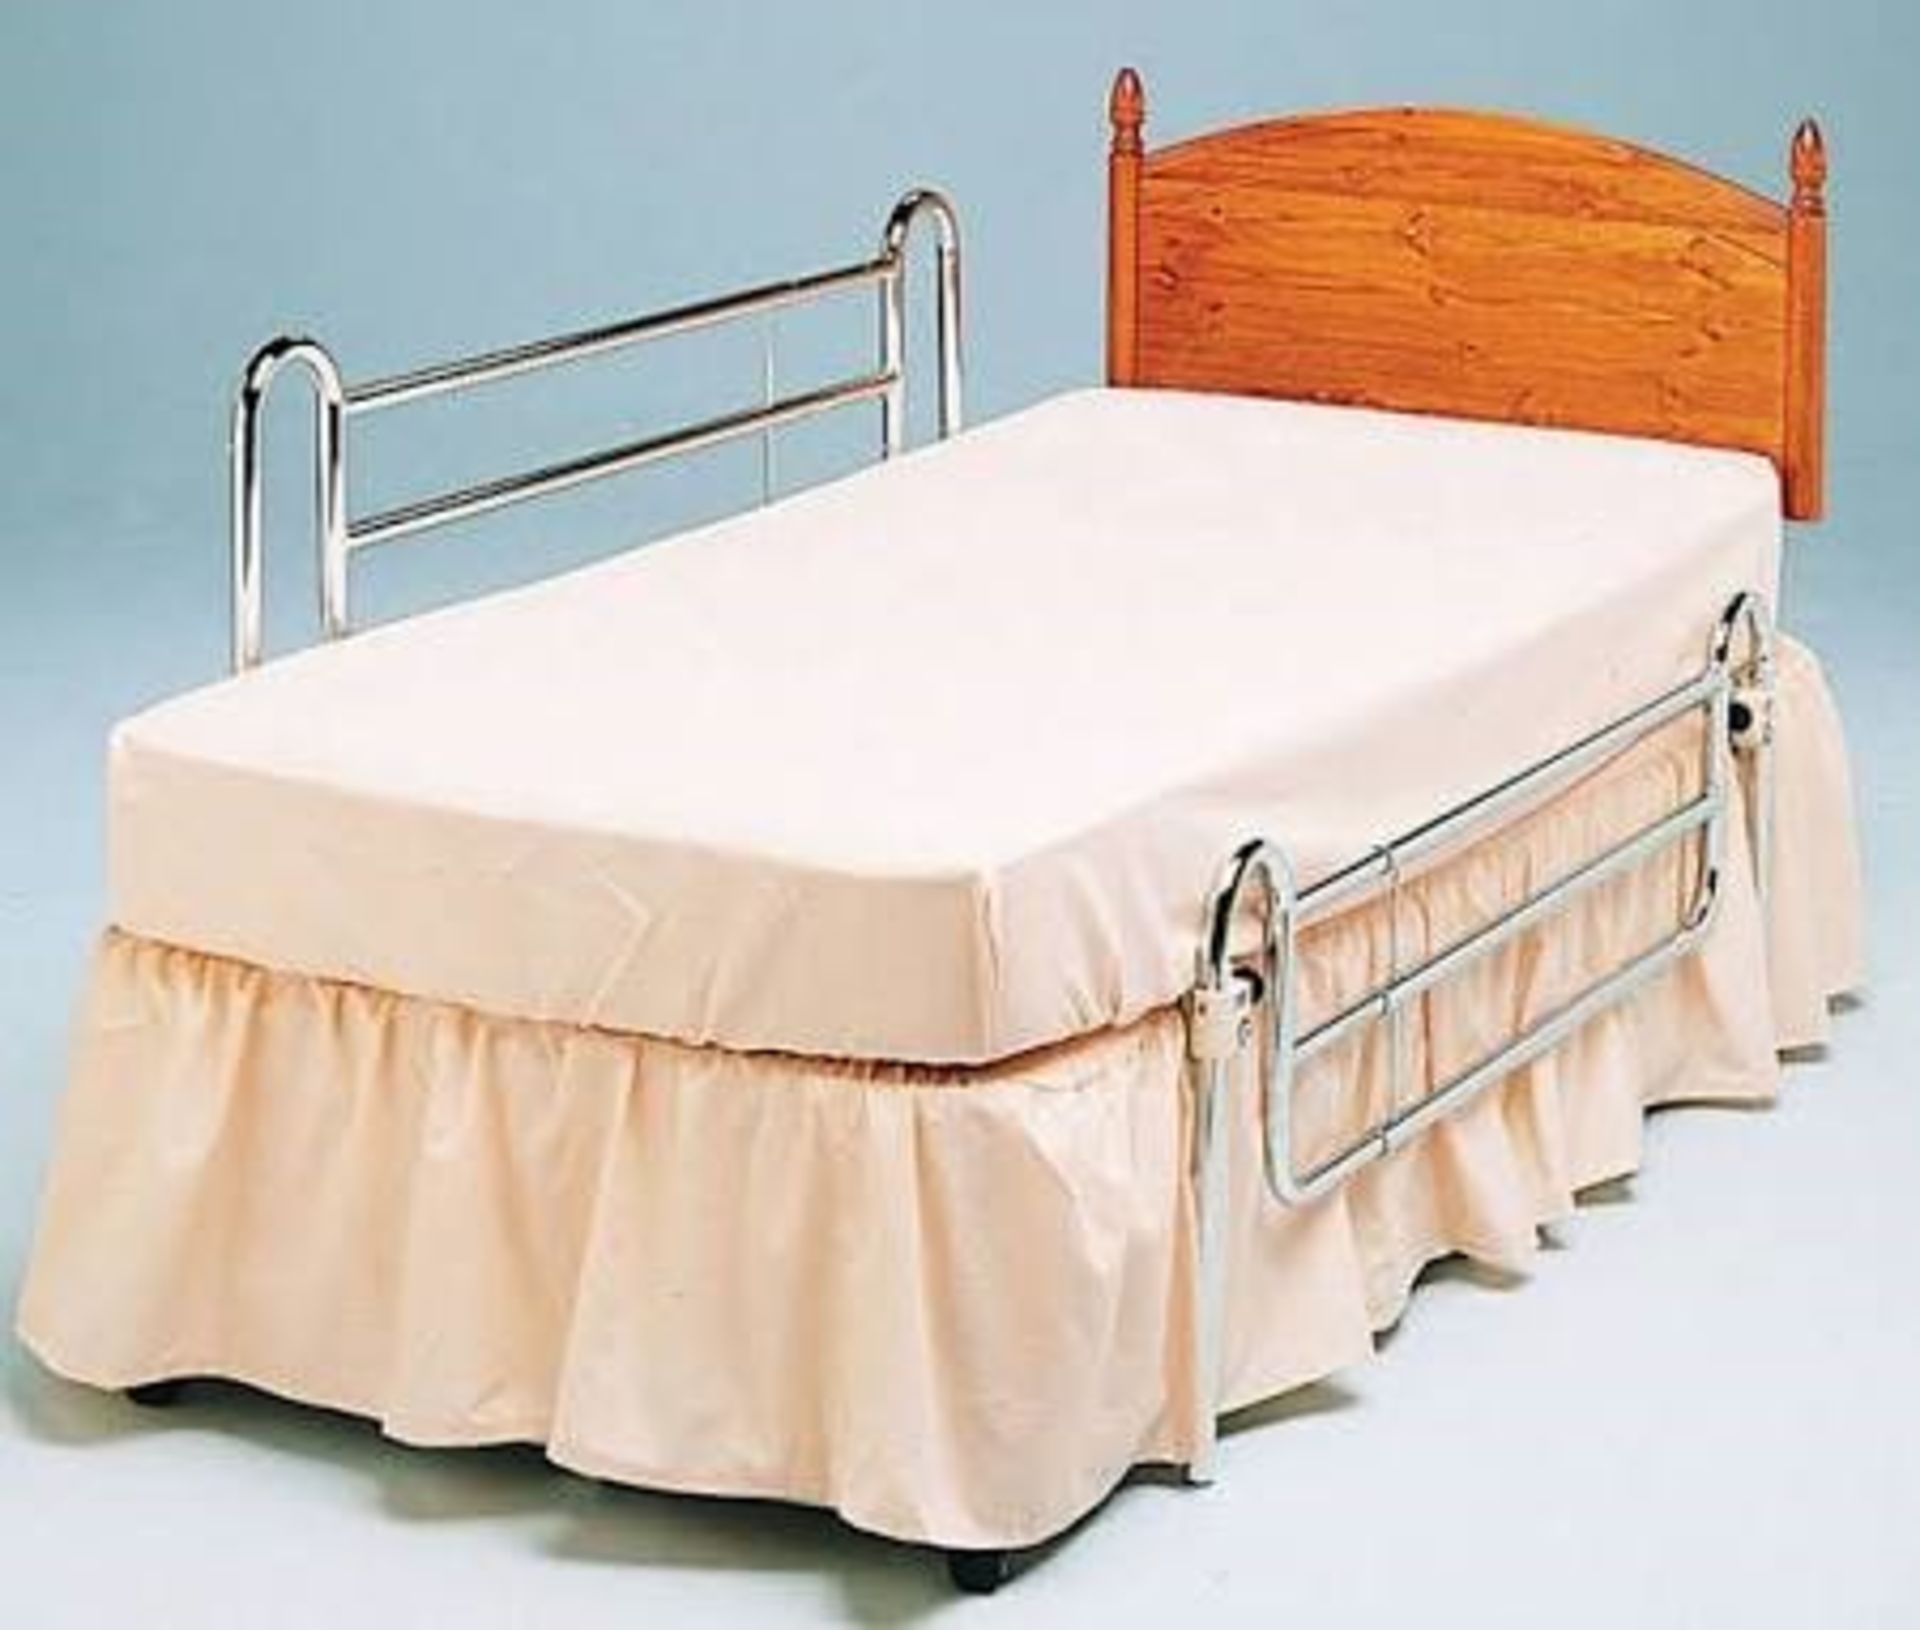 Lot 796 - ME : 1 AS NEW BOXED STANDARD BED RAILS FOR DIVAN BED / RRP £141.71 (VIEWING HIGHLY RECOMMENDED)